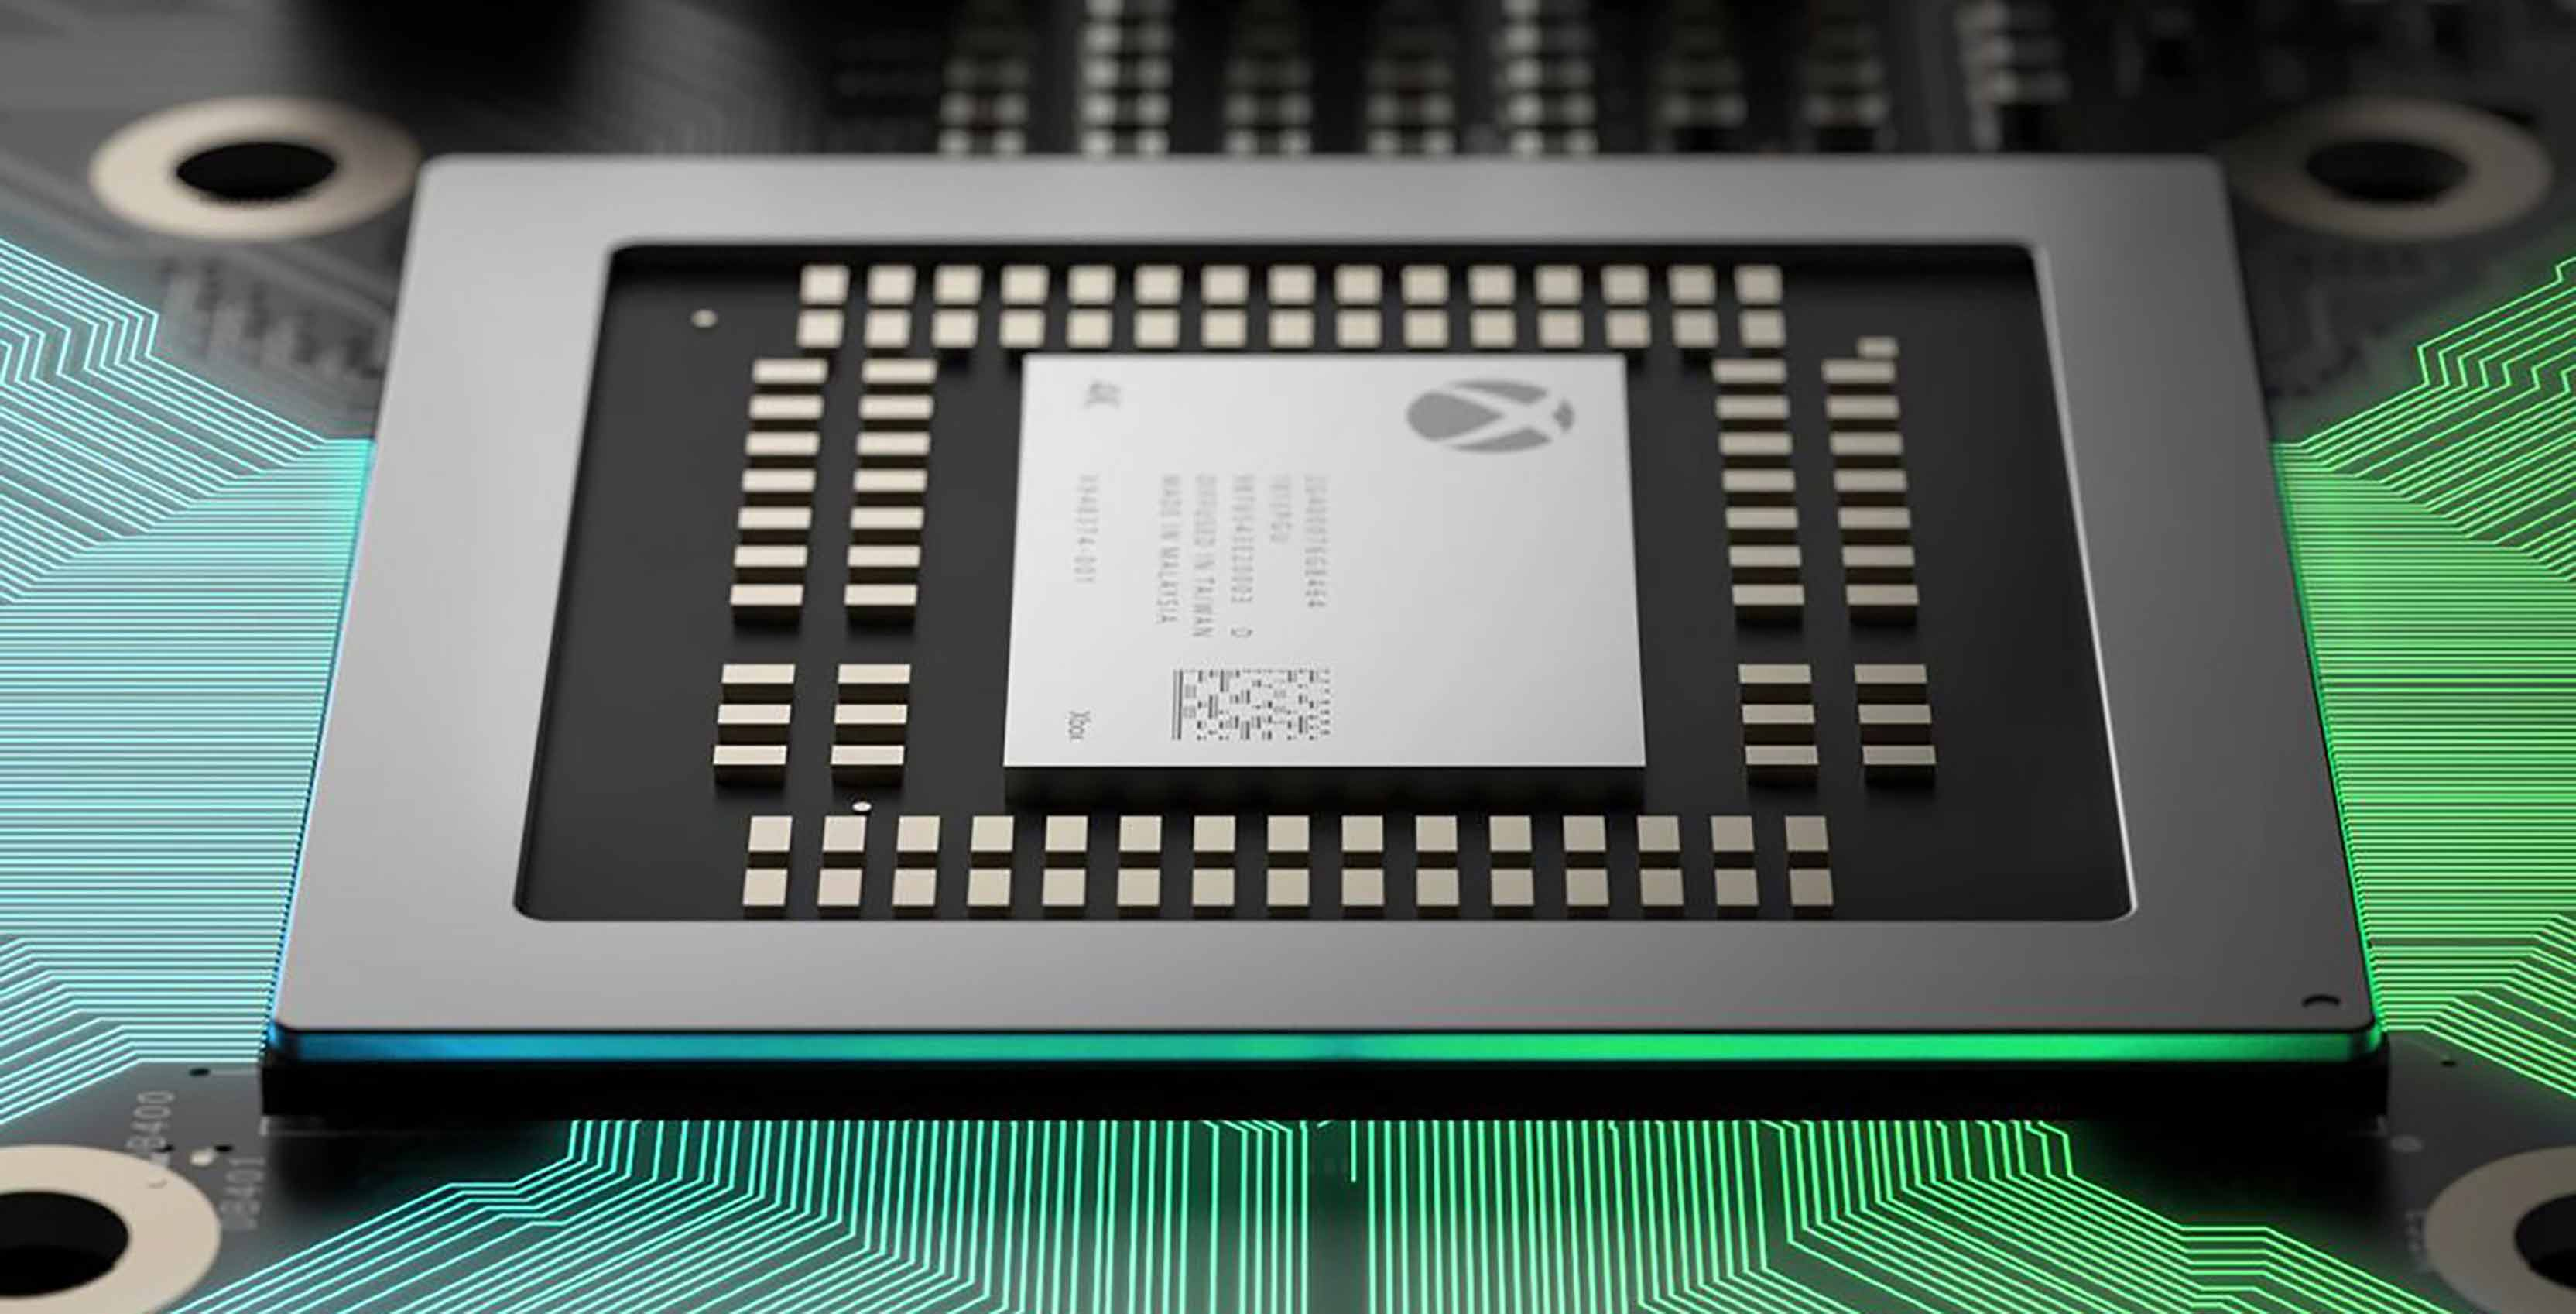 Project Scorpio chip with Xbox logo